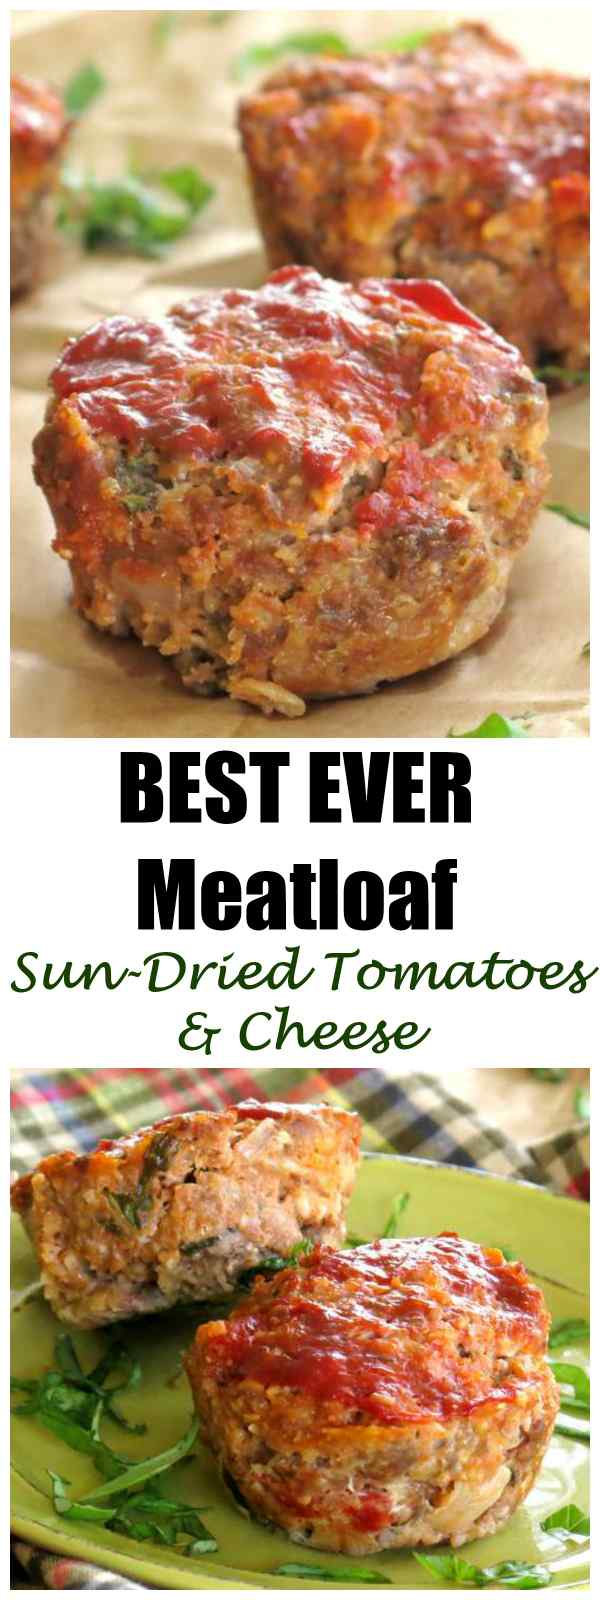 Meatloaf with Sun-dried Tomatoes and Mozzarella Cheese